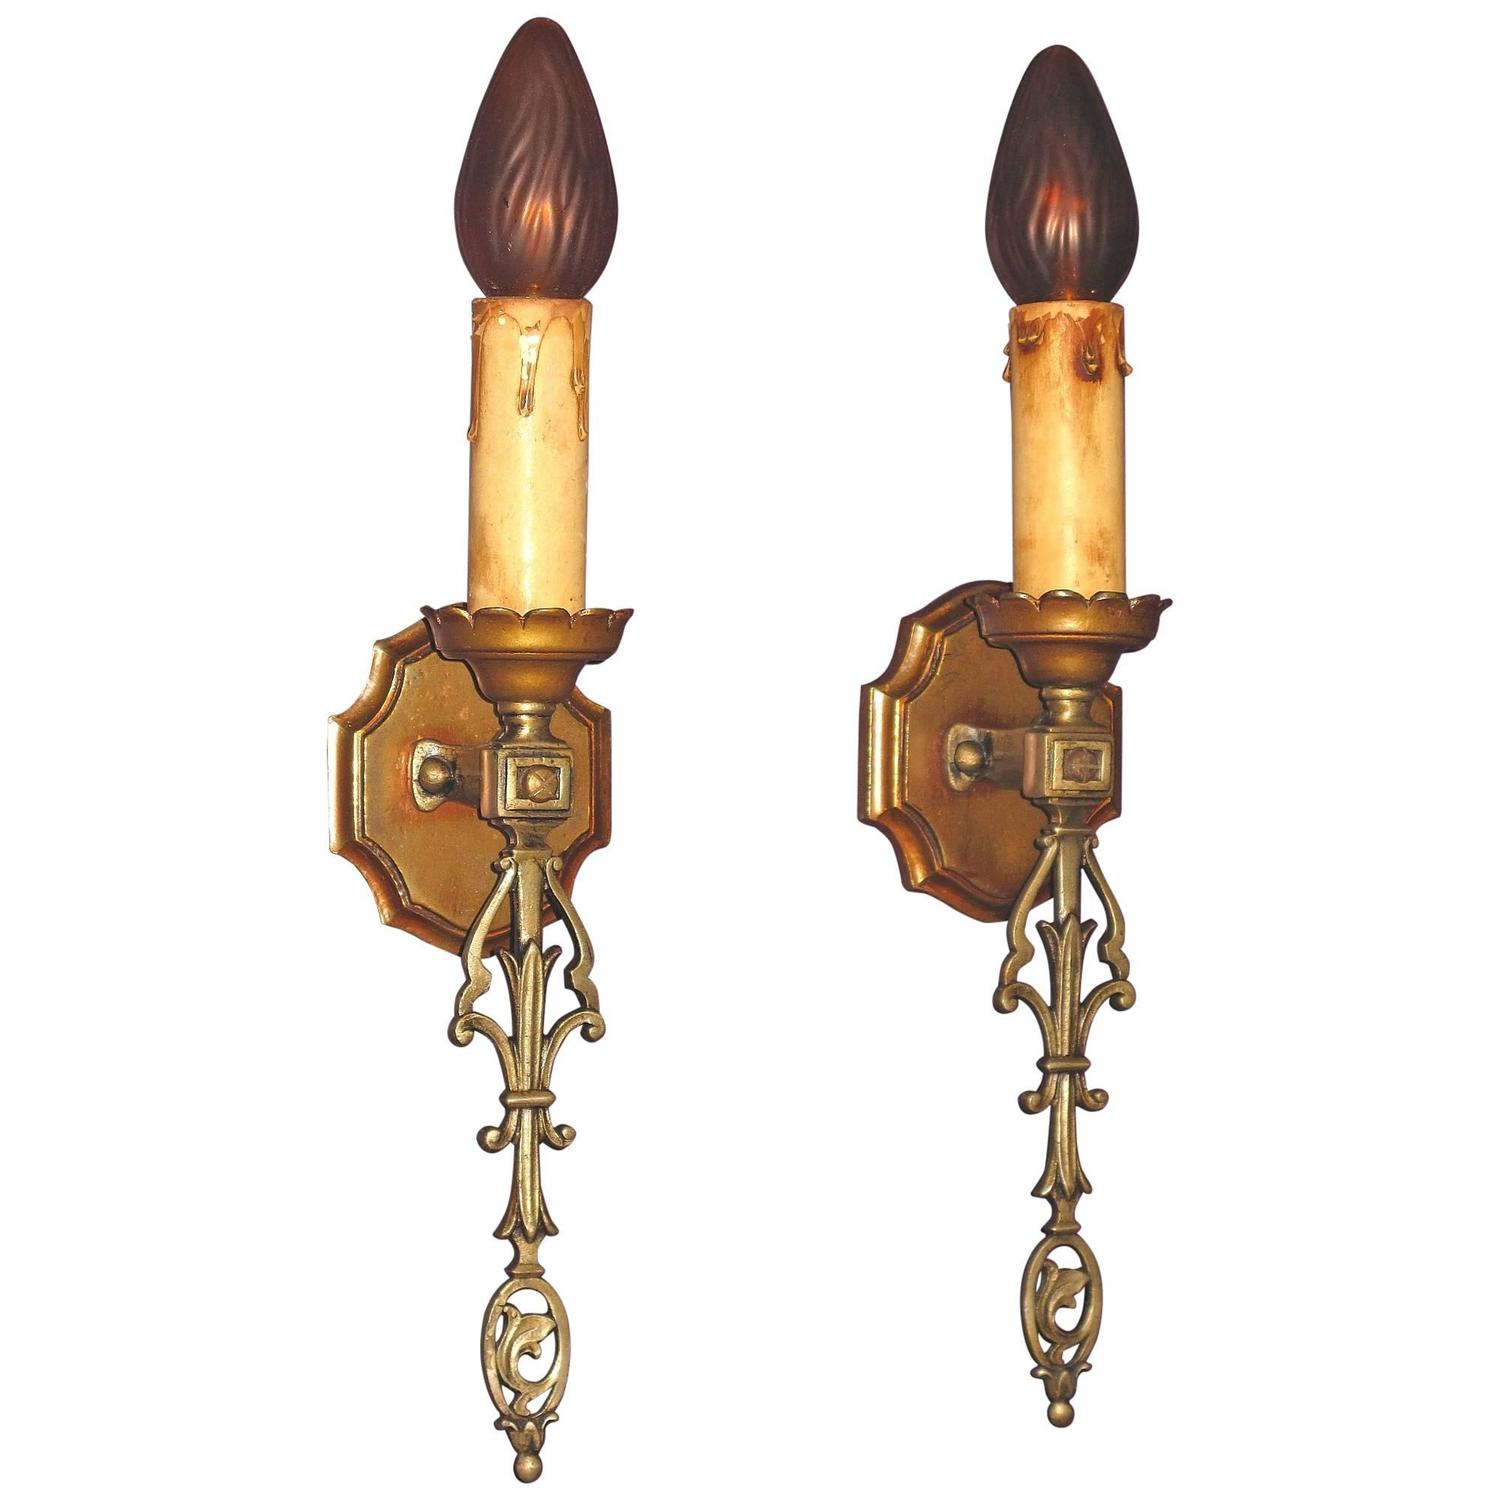 Eclectic Wall Sconces French Eclectic Style Single Bulb Sconces 1920s For Sale